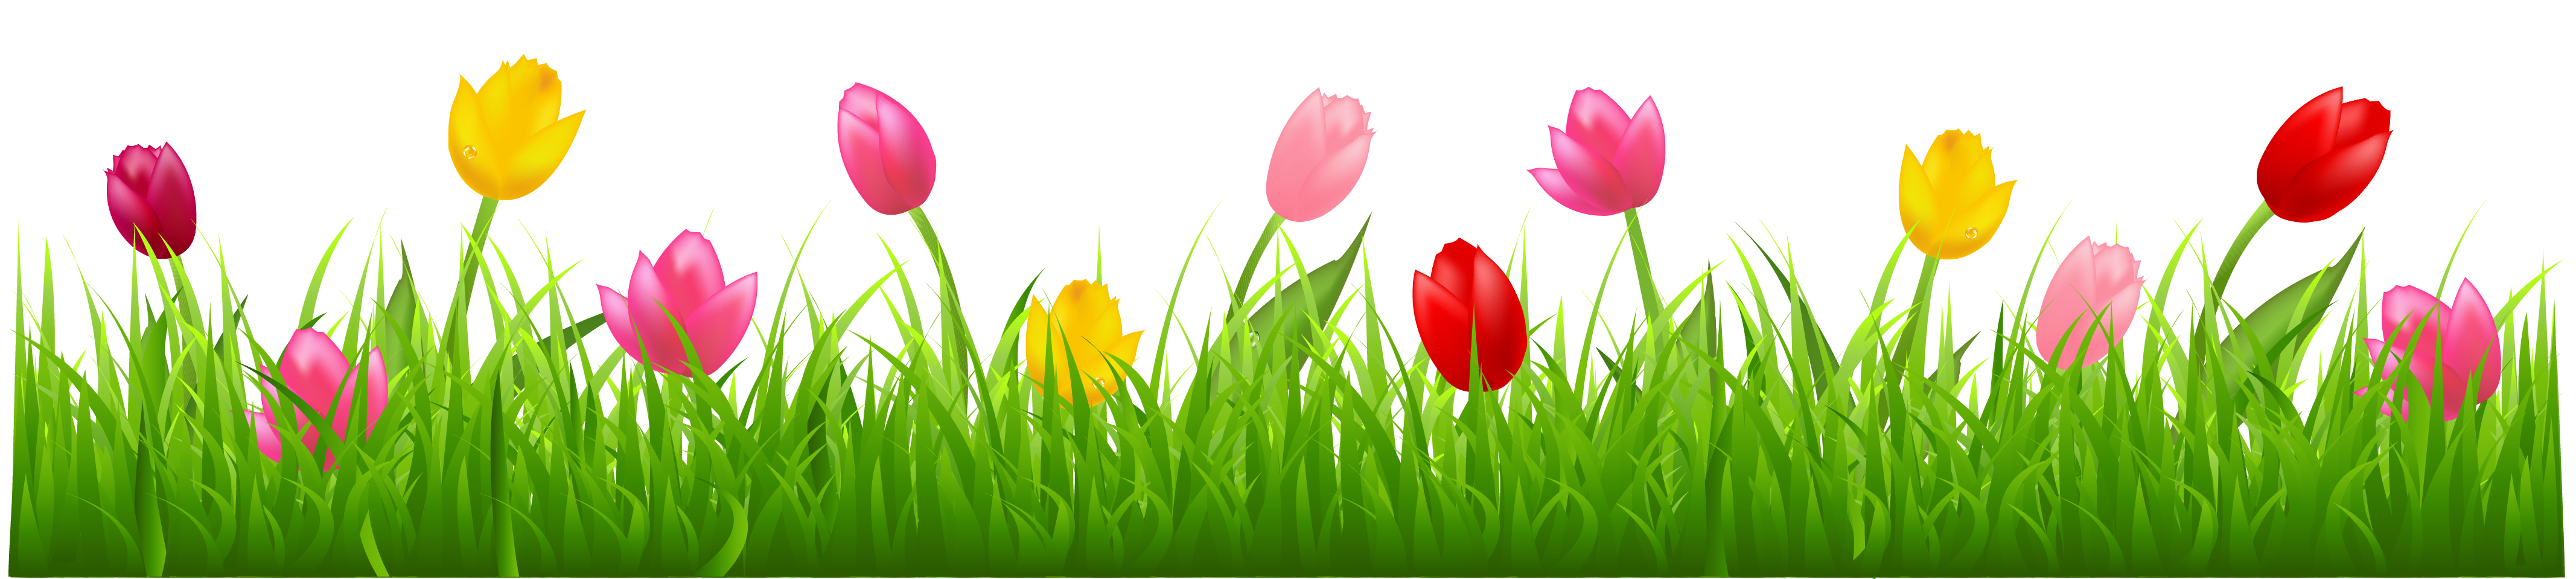 With colorful tulips png. Circle clipart grass